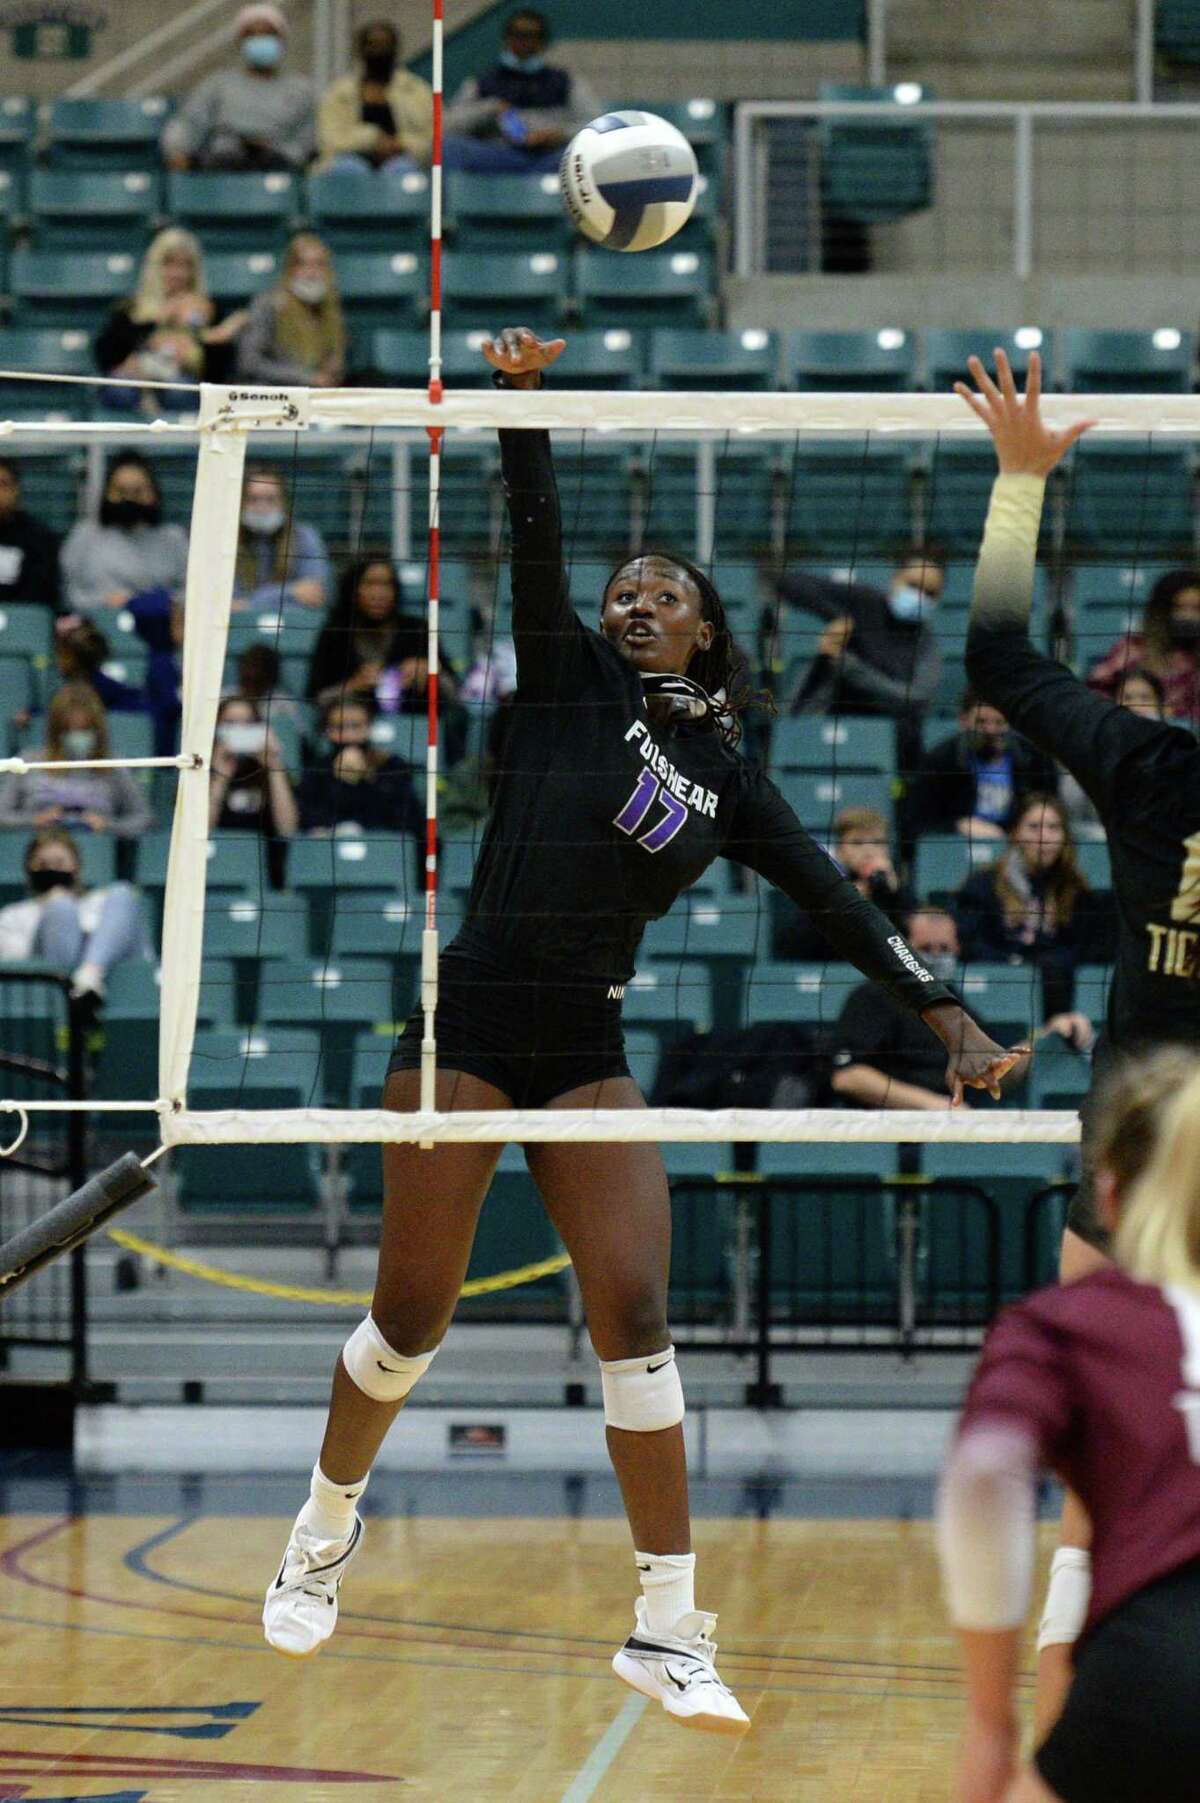 Brielle Warren (17) of Fulshear spikes a ball during the third set of the Class 5A state semifinal volleyball match between the Fulshear Chargers and the Dripping Springs Tigers on Tuesday, December 8, 2020 at Leonard Merrell Center, Katy, TX.